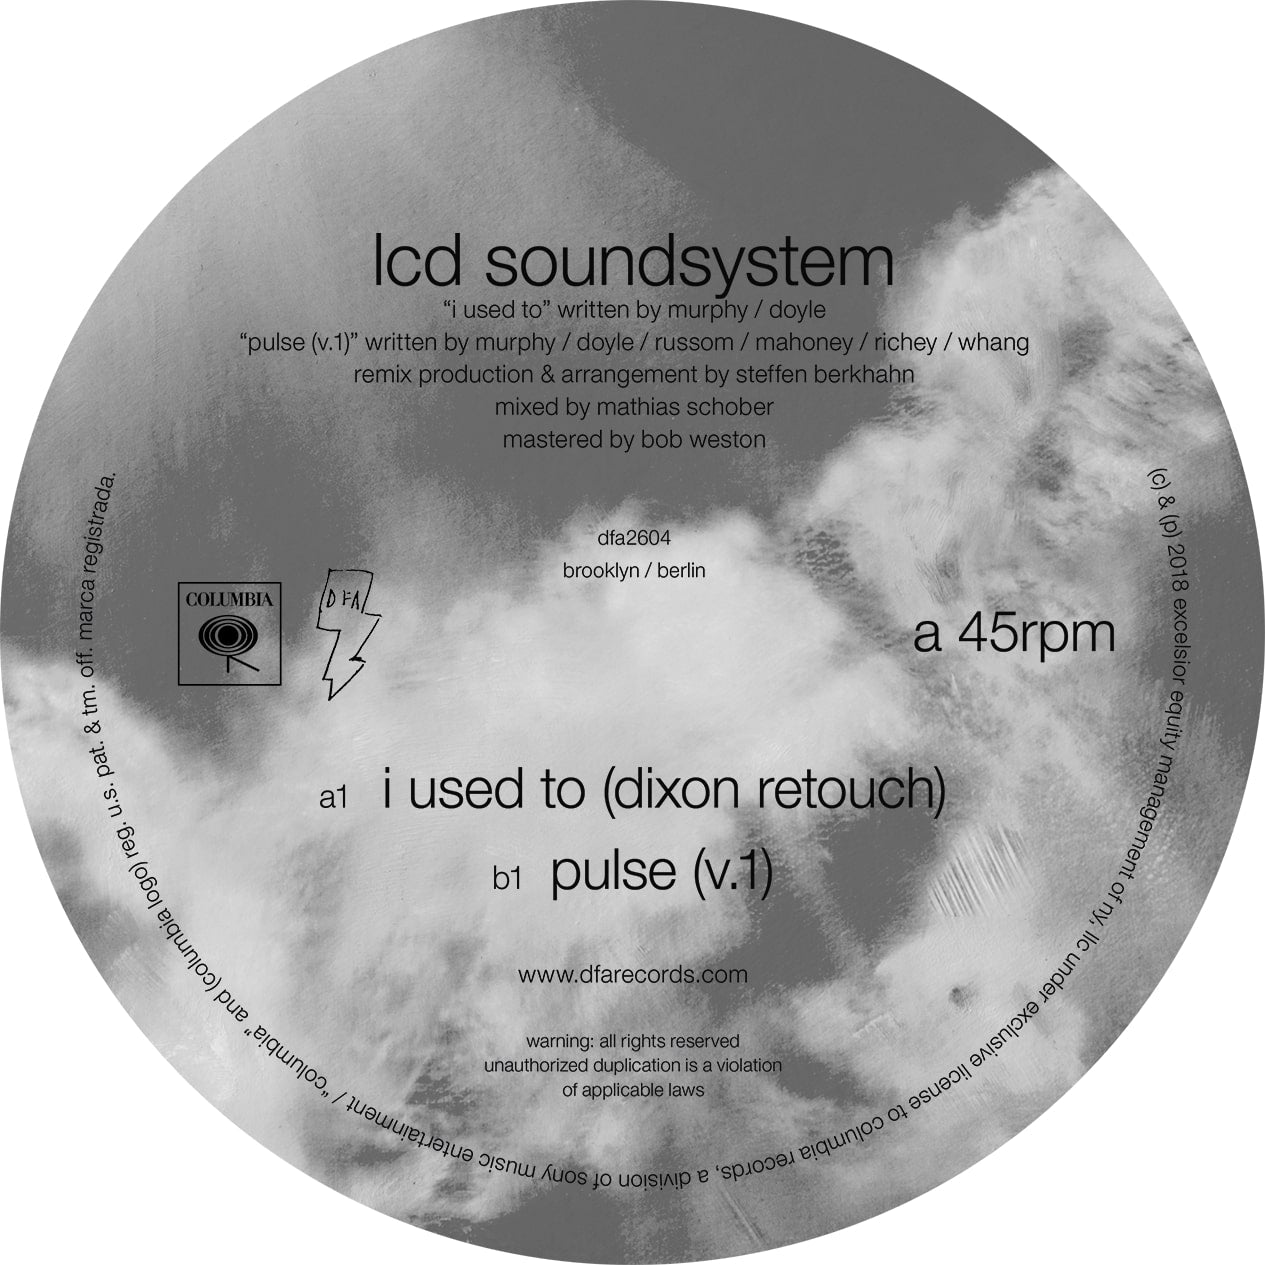 LCD Soundsystem - I Used To (Dixon Rework b/w Pulse v.1) 12""